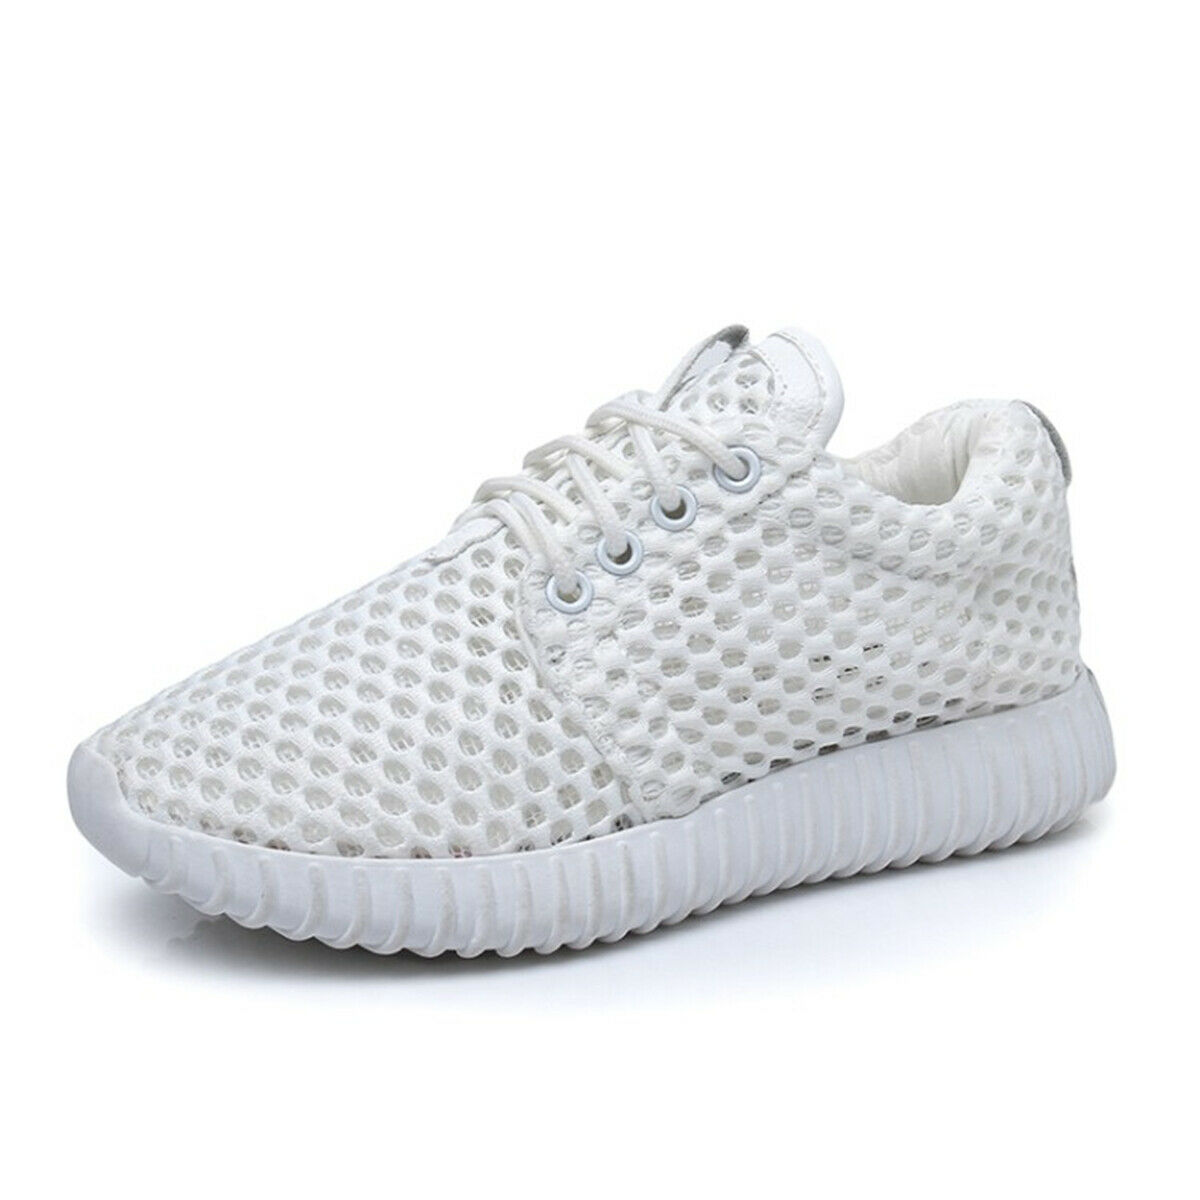 2019 New Sports Womens Outdoor Leisure White Running shoes Athletic Sneakers Us